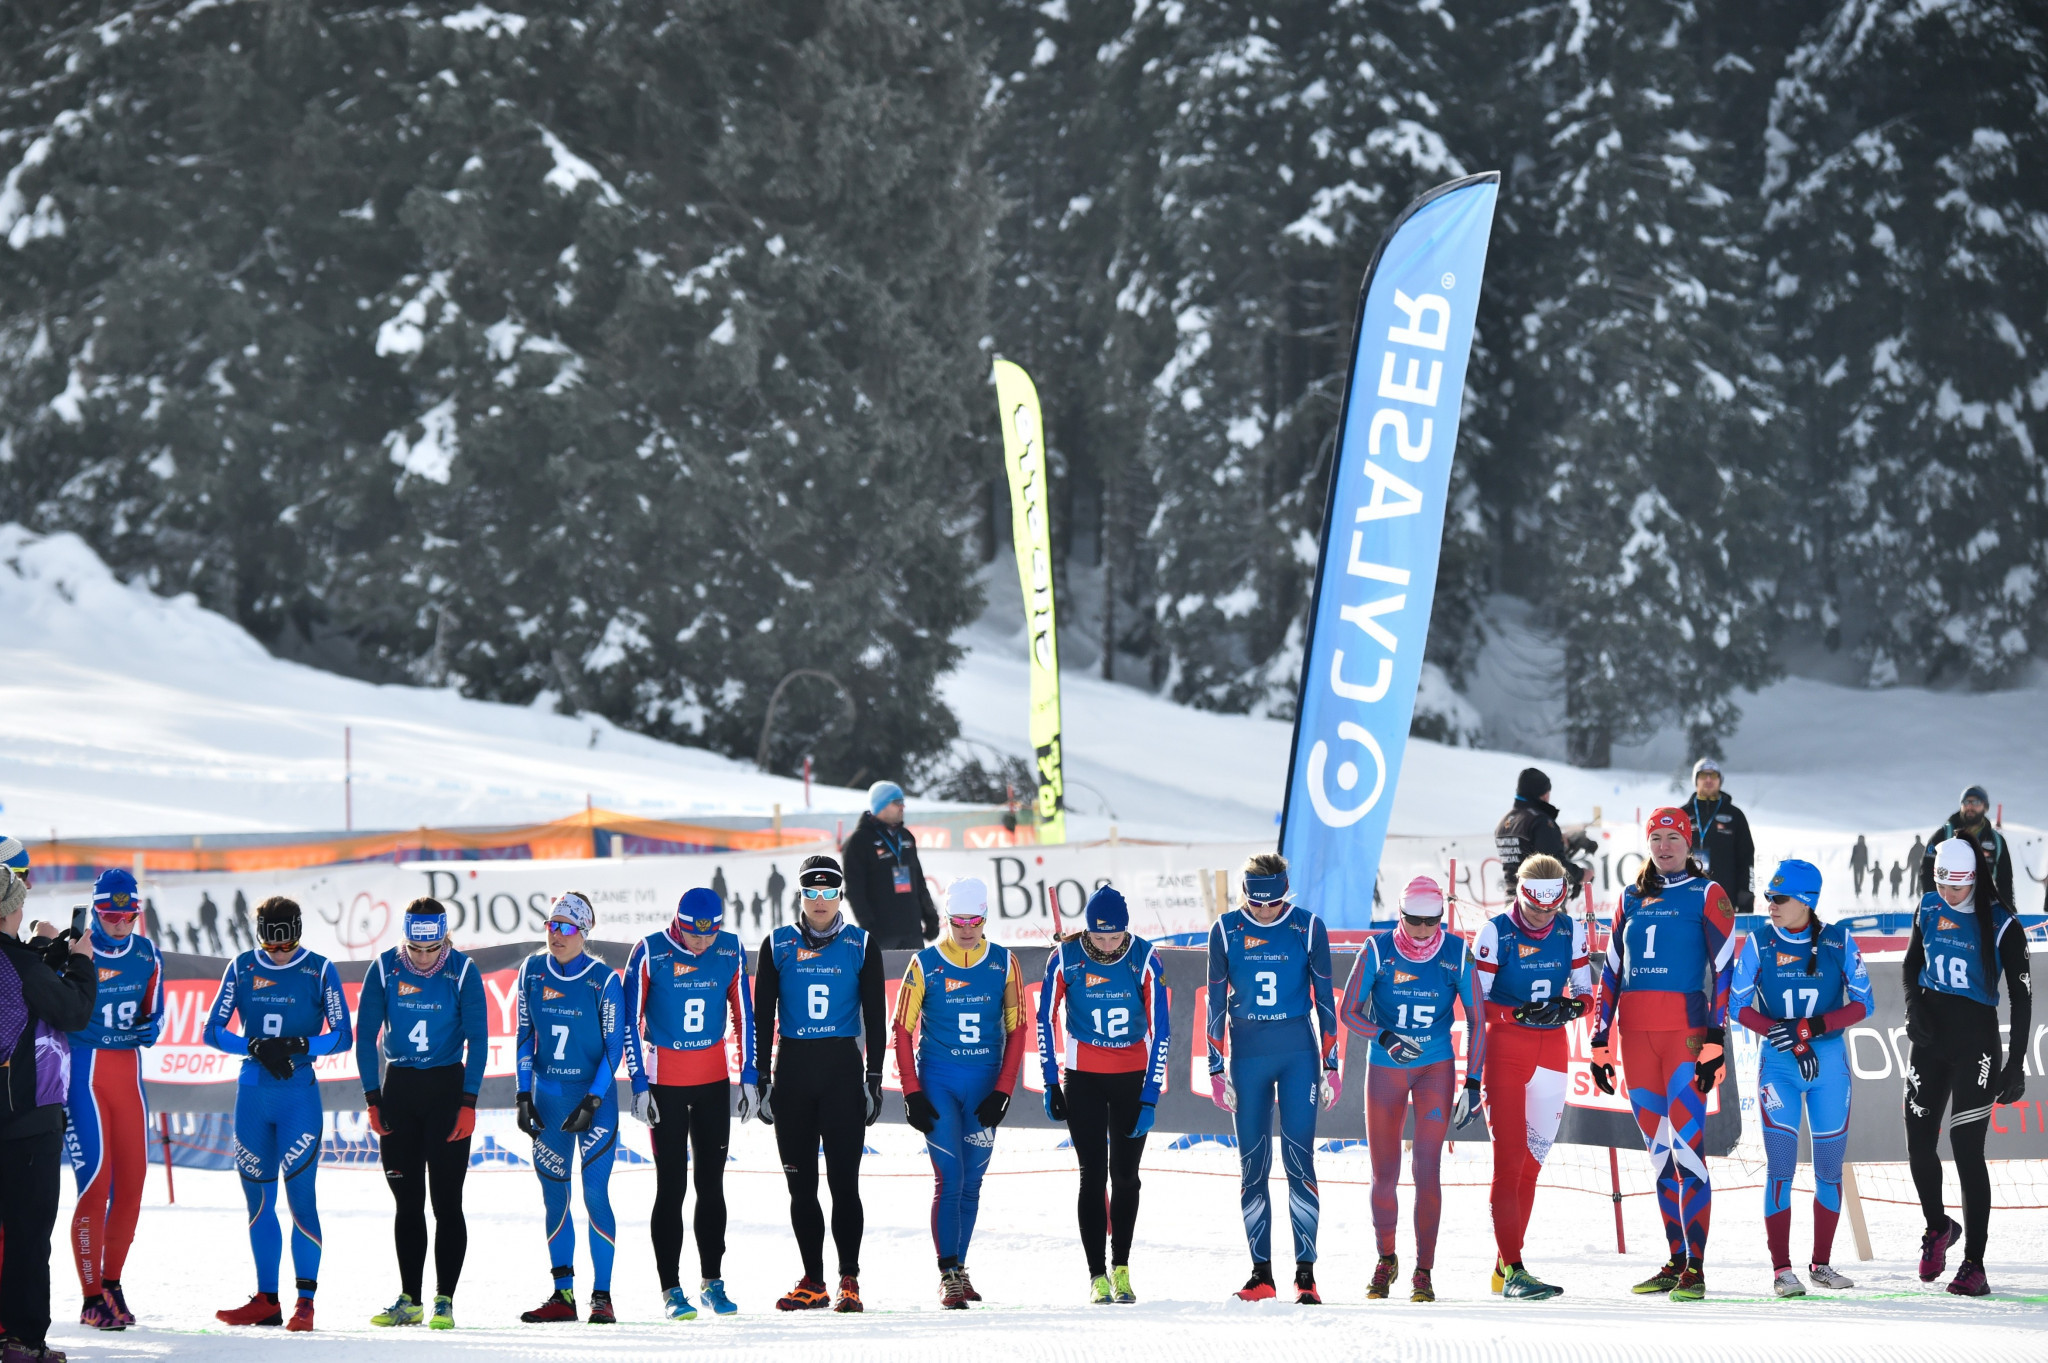 ITU Winter Triathlon World Championships return to Asiago in 2020